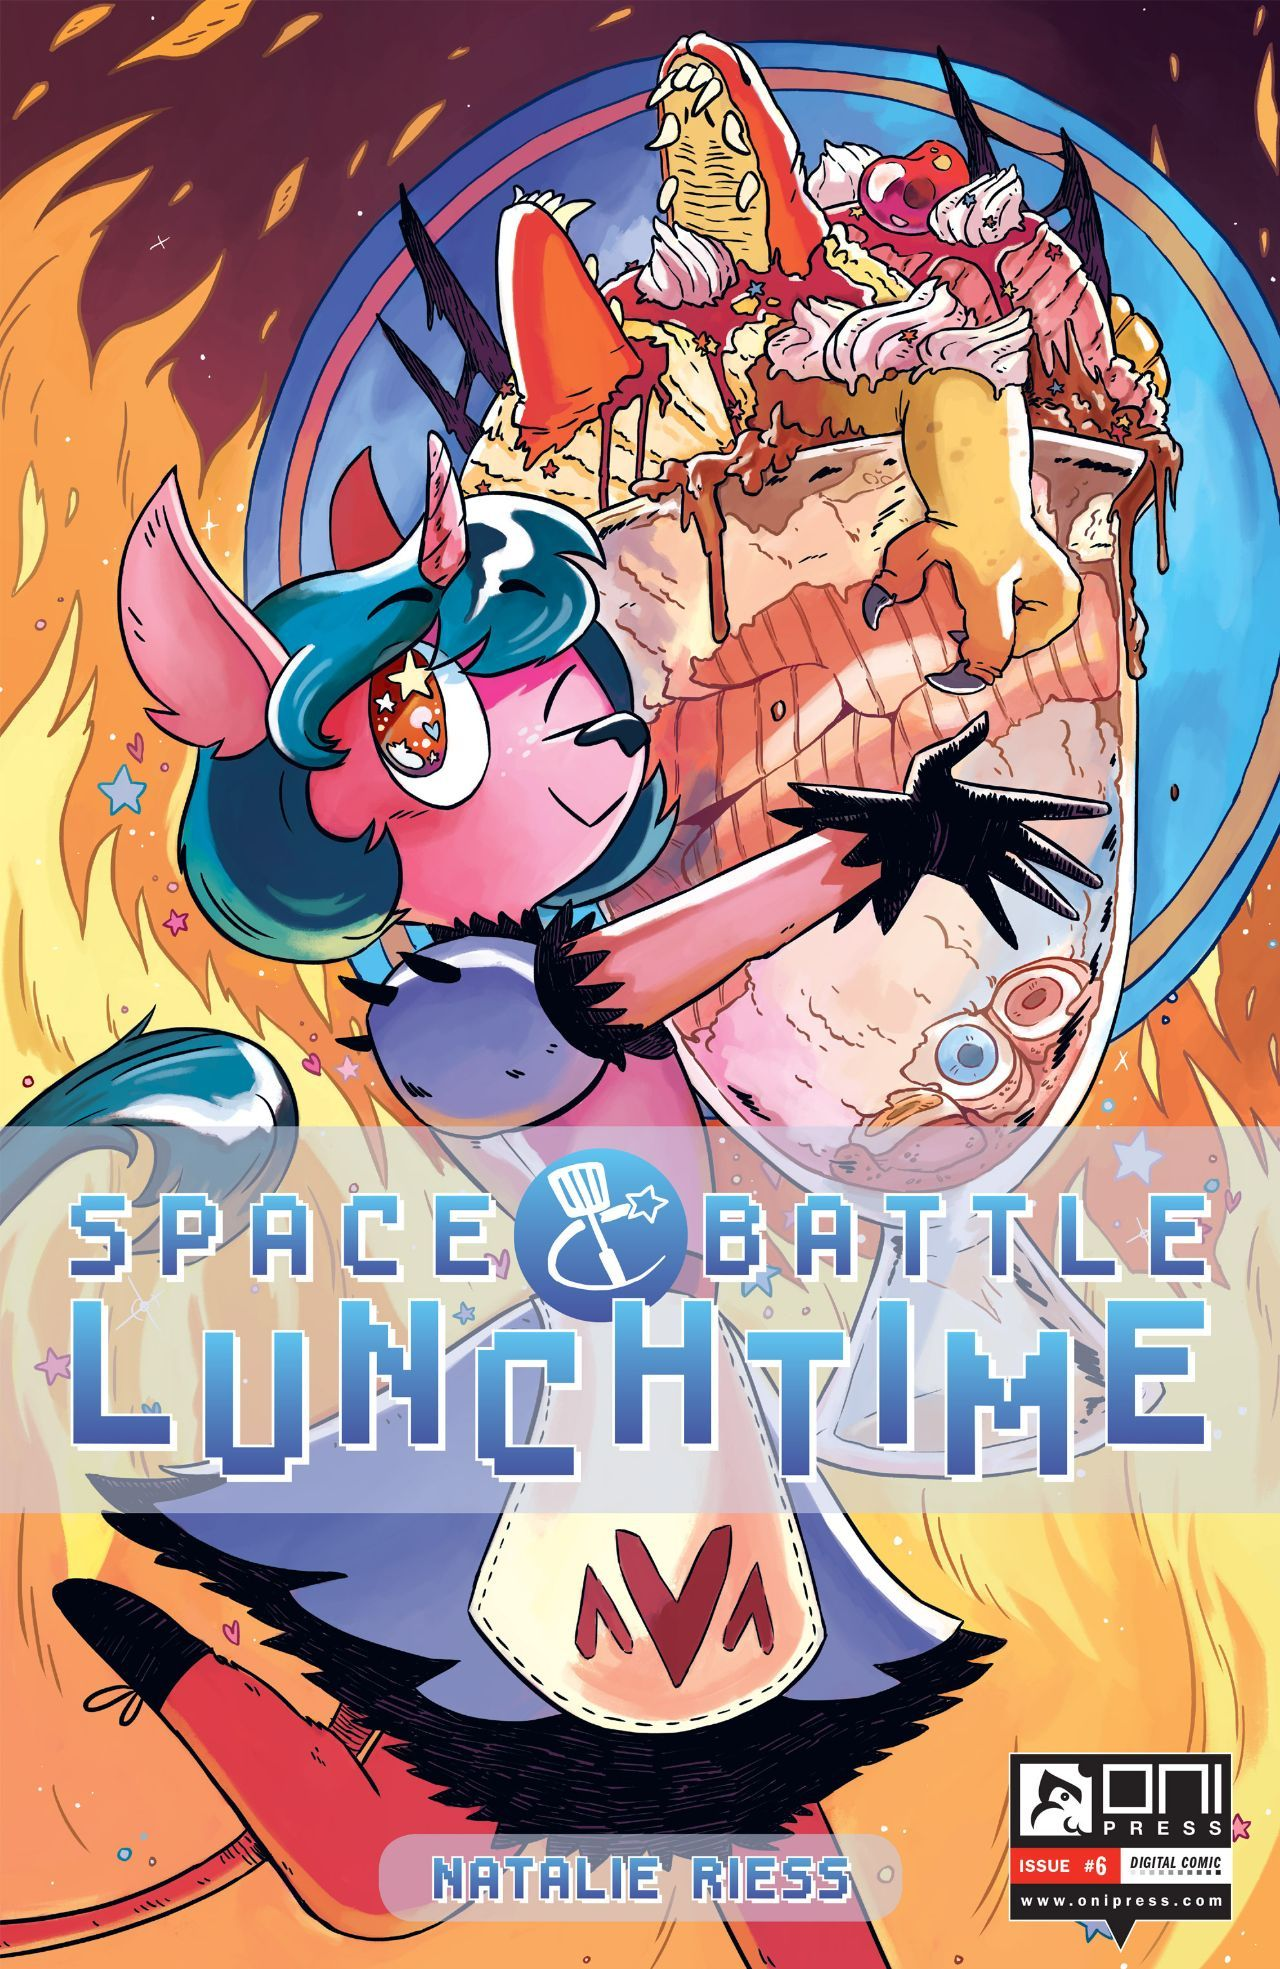 Space Battle Lunchtime #6 #OniPress @onipress